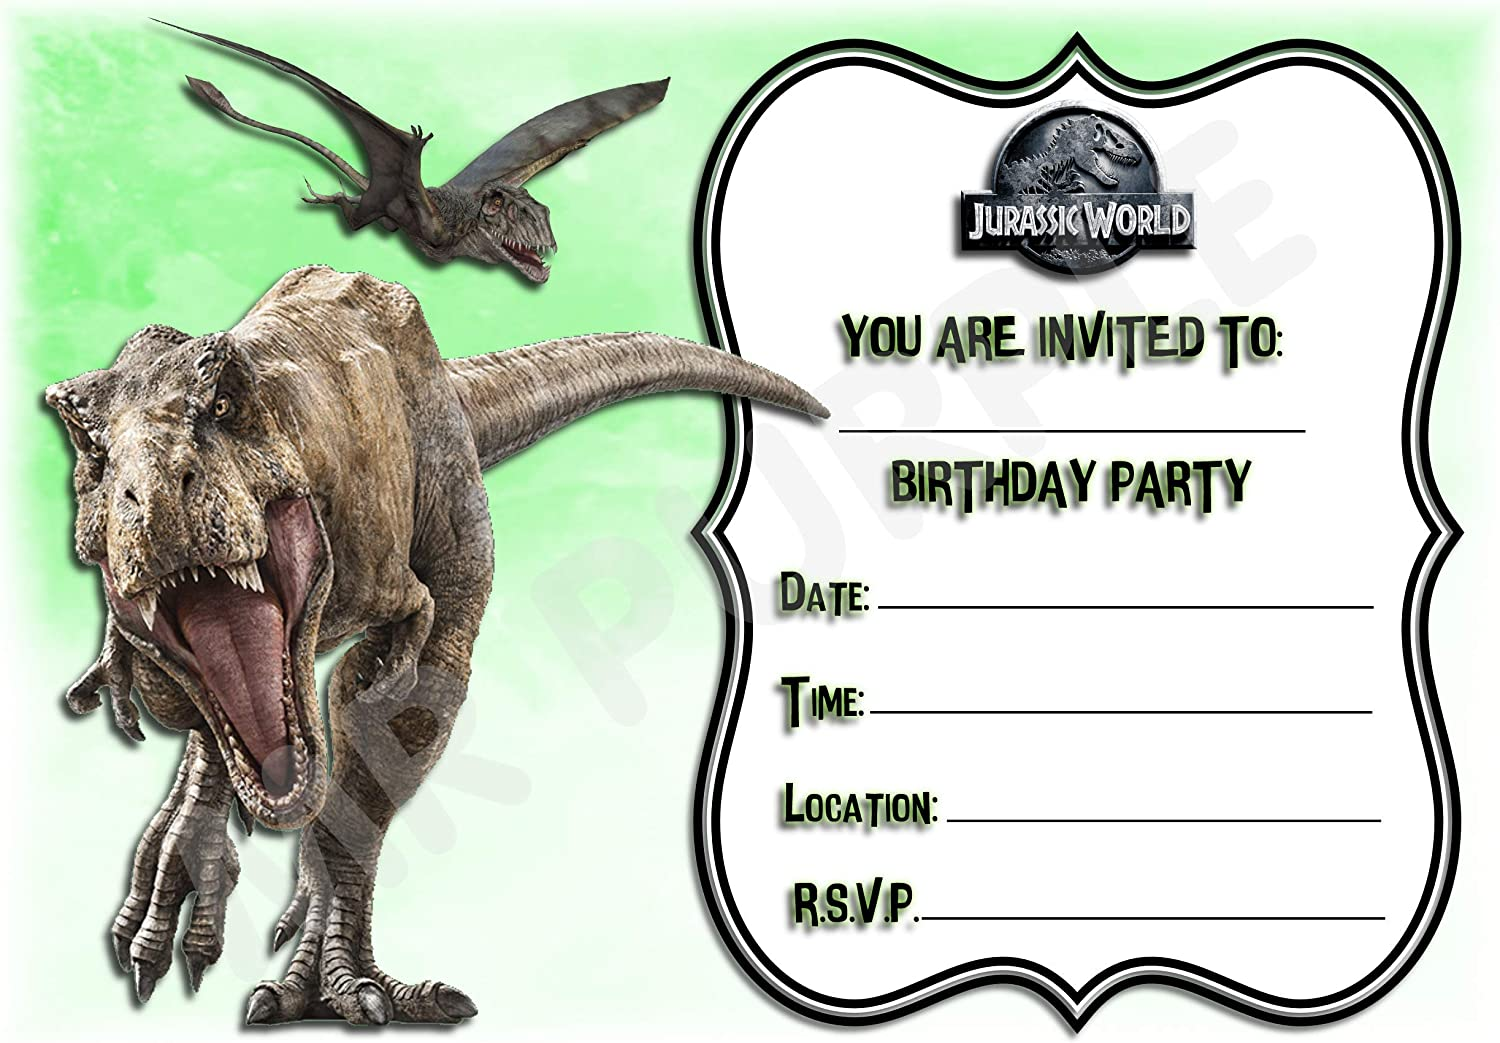 Dinosaur Landscape Frame Design Pack of 12 A5 Invitations Jurassic World Birthday Party Invites with Envelopes Party Decorations//Accessories